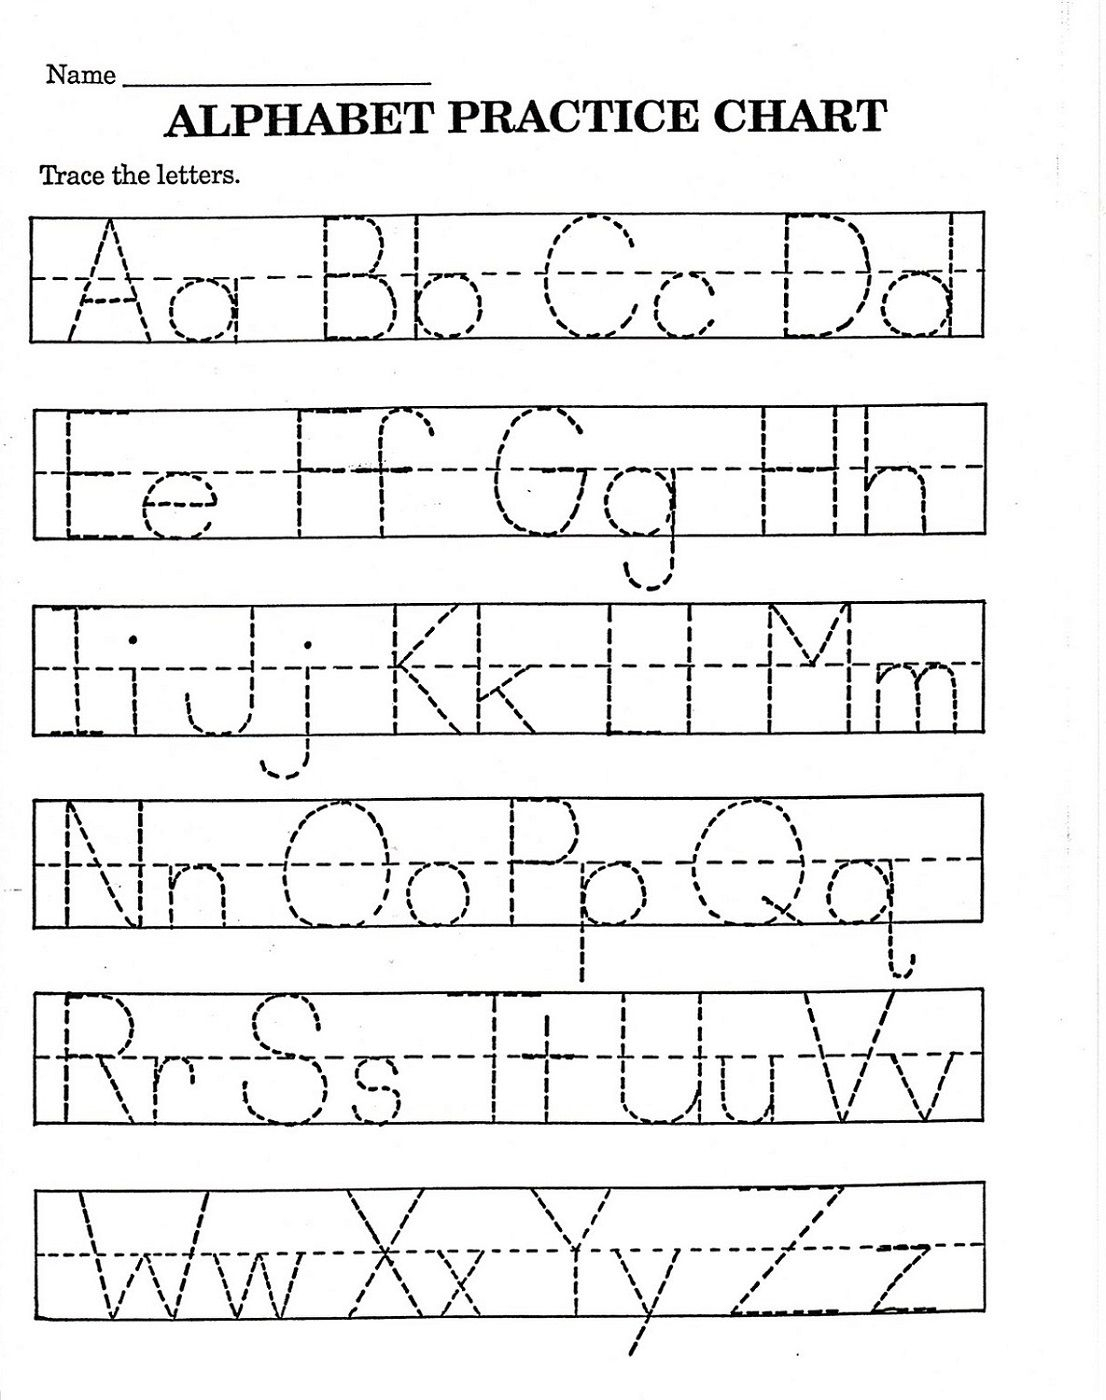 Trace Letter Worksheets Free | Alphabet Tracing Worksheets with Tracing Letters Worksheets Free Printable